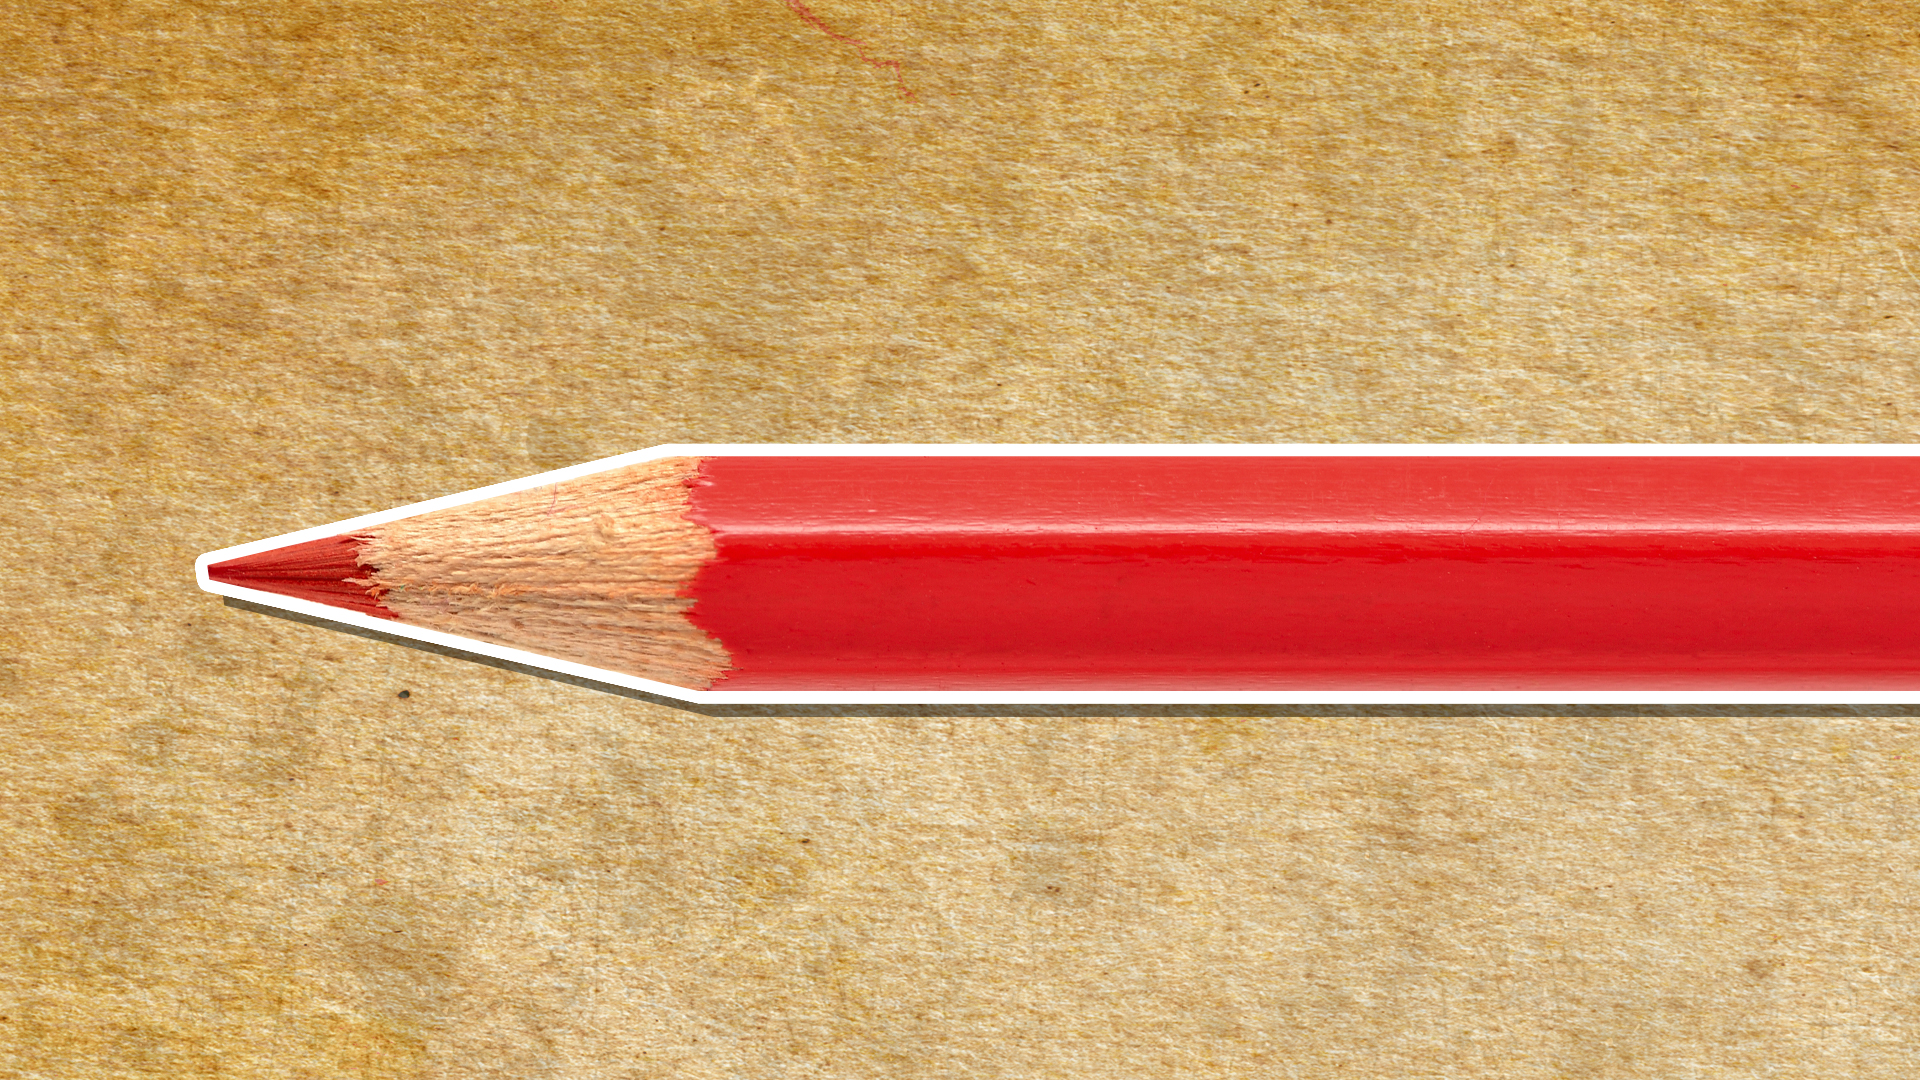 A red pencil